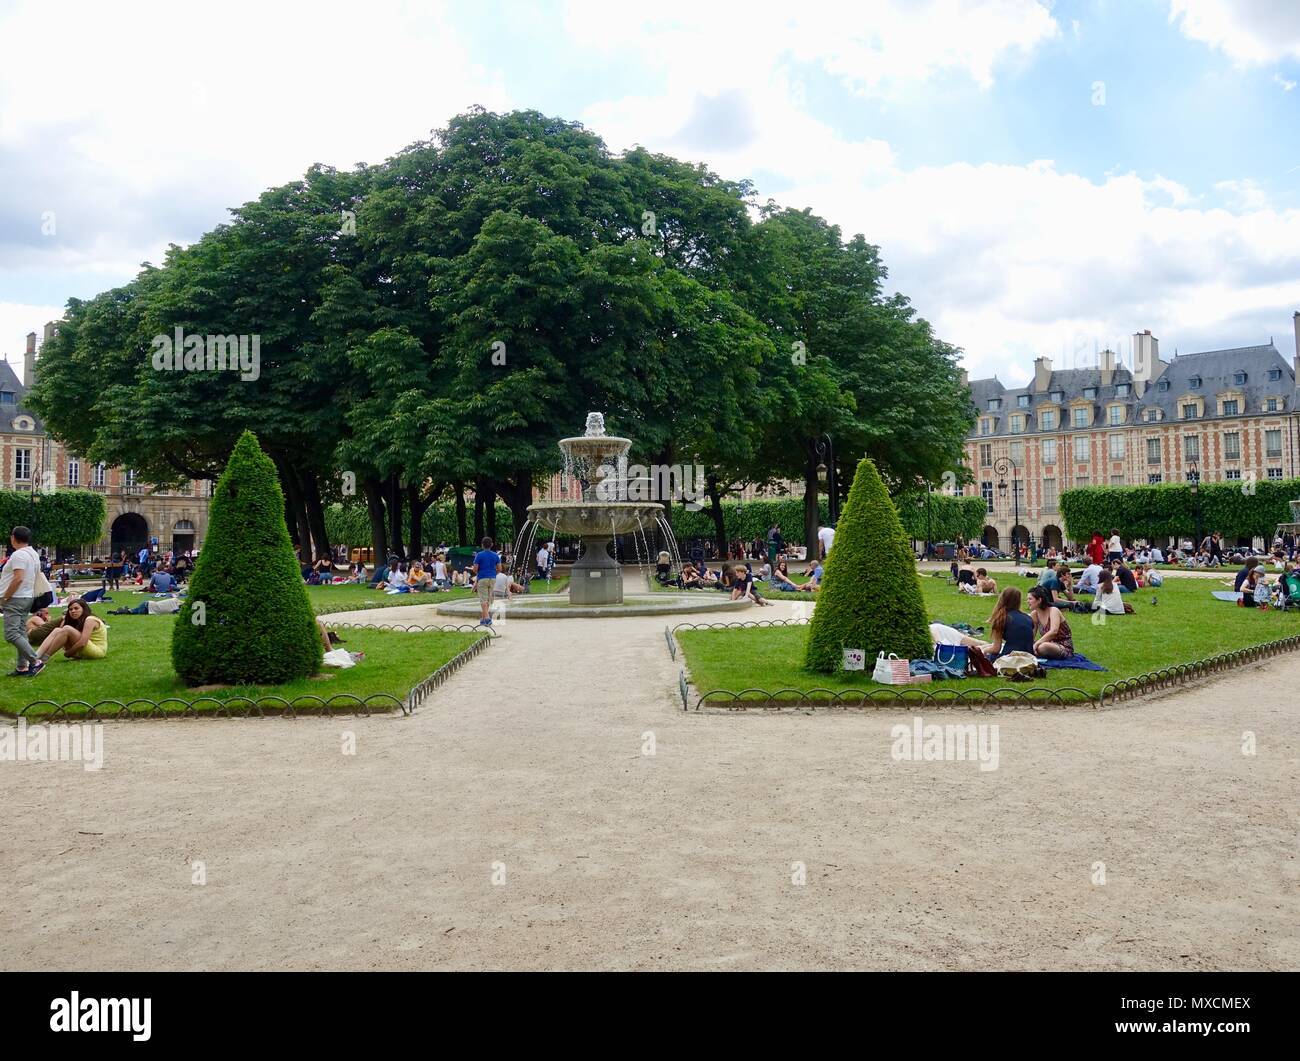 People sitting, lying on the grass and enjoying Place des Vosges, in the 3rd/4th Arrondissements, on a warm June afternoon. Paris, France - Stock Image